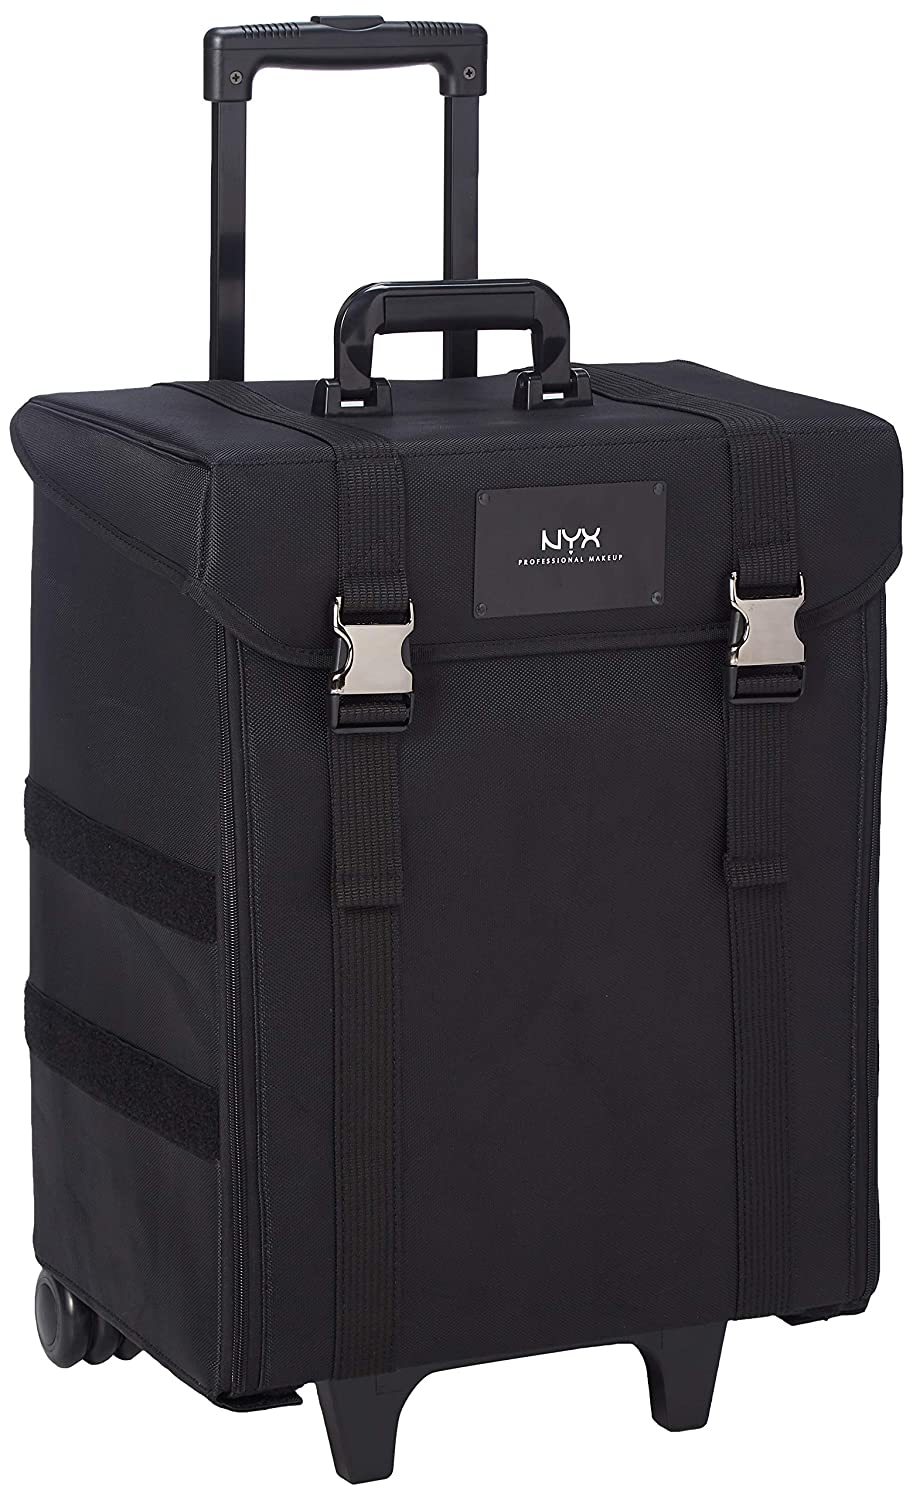 NYX PROFESSIONAL MAKEUP Artist Train Case, Organized Chaos, 16 Pound